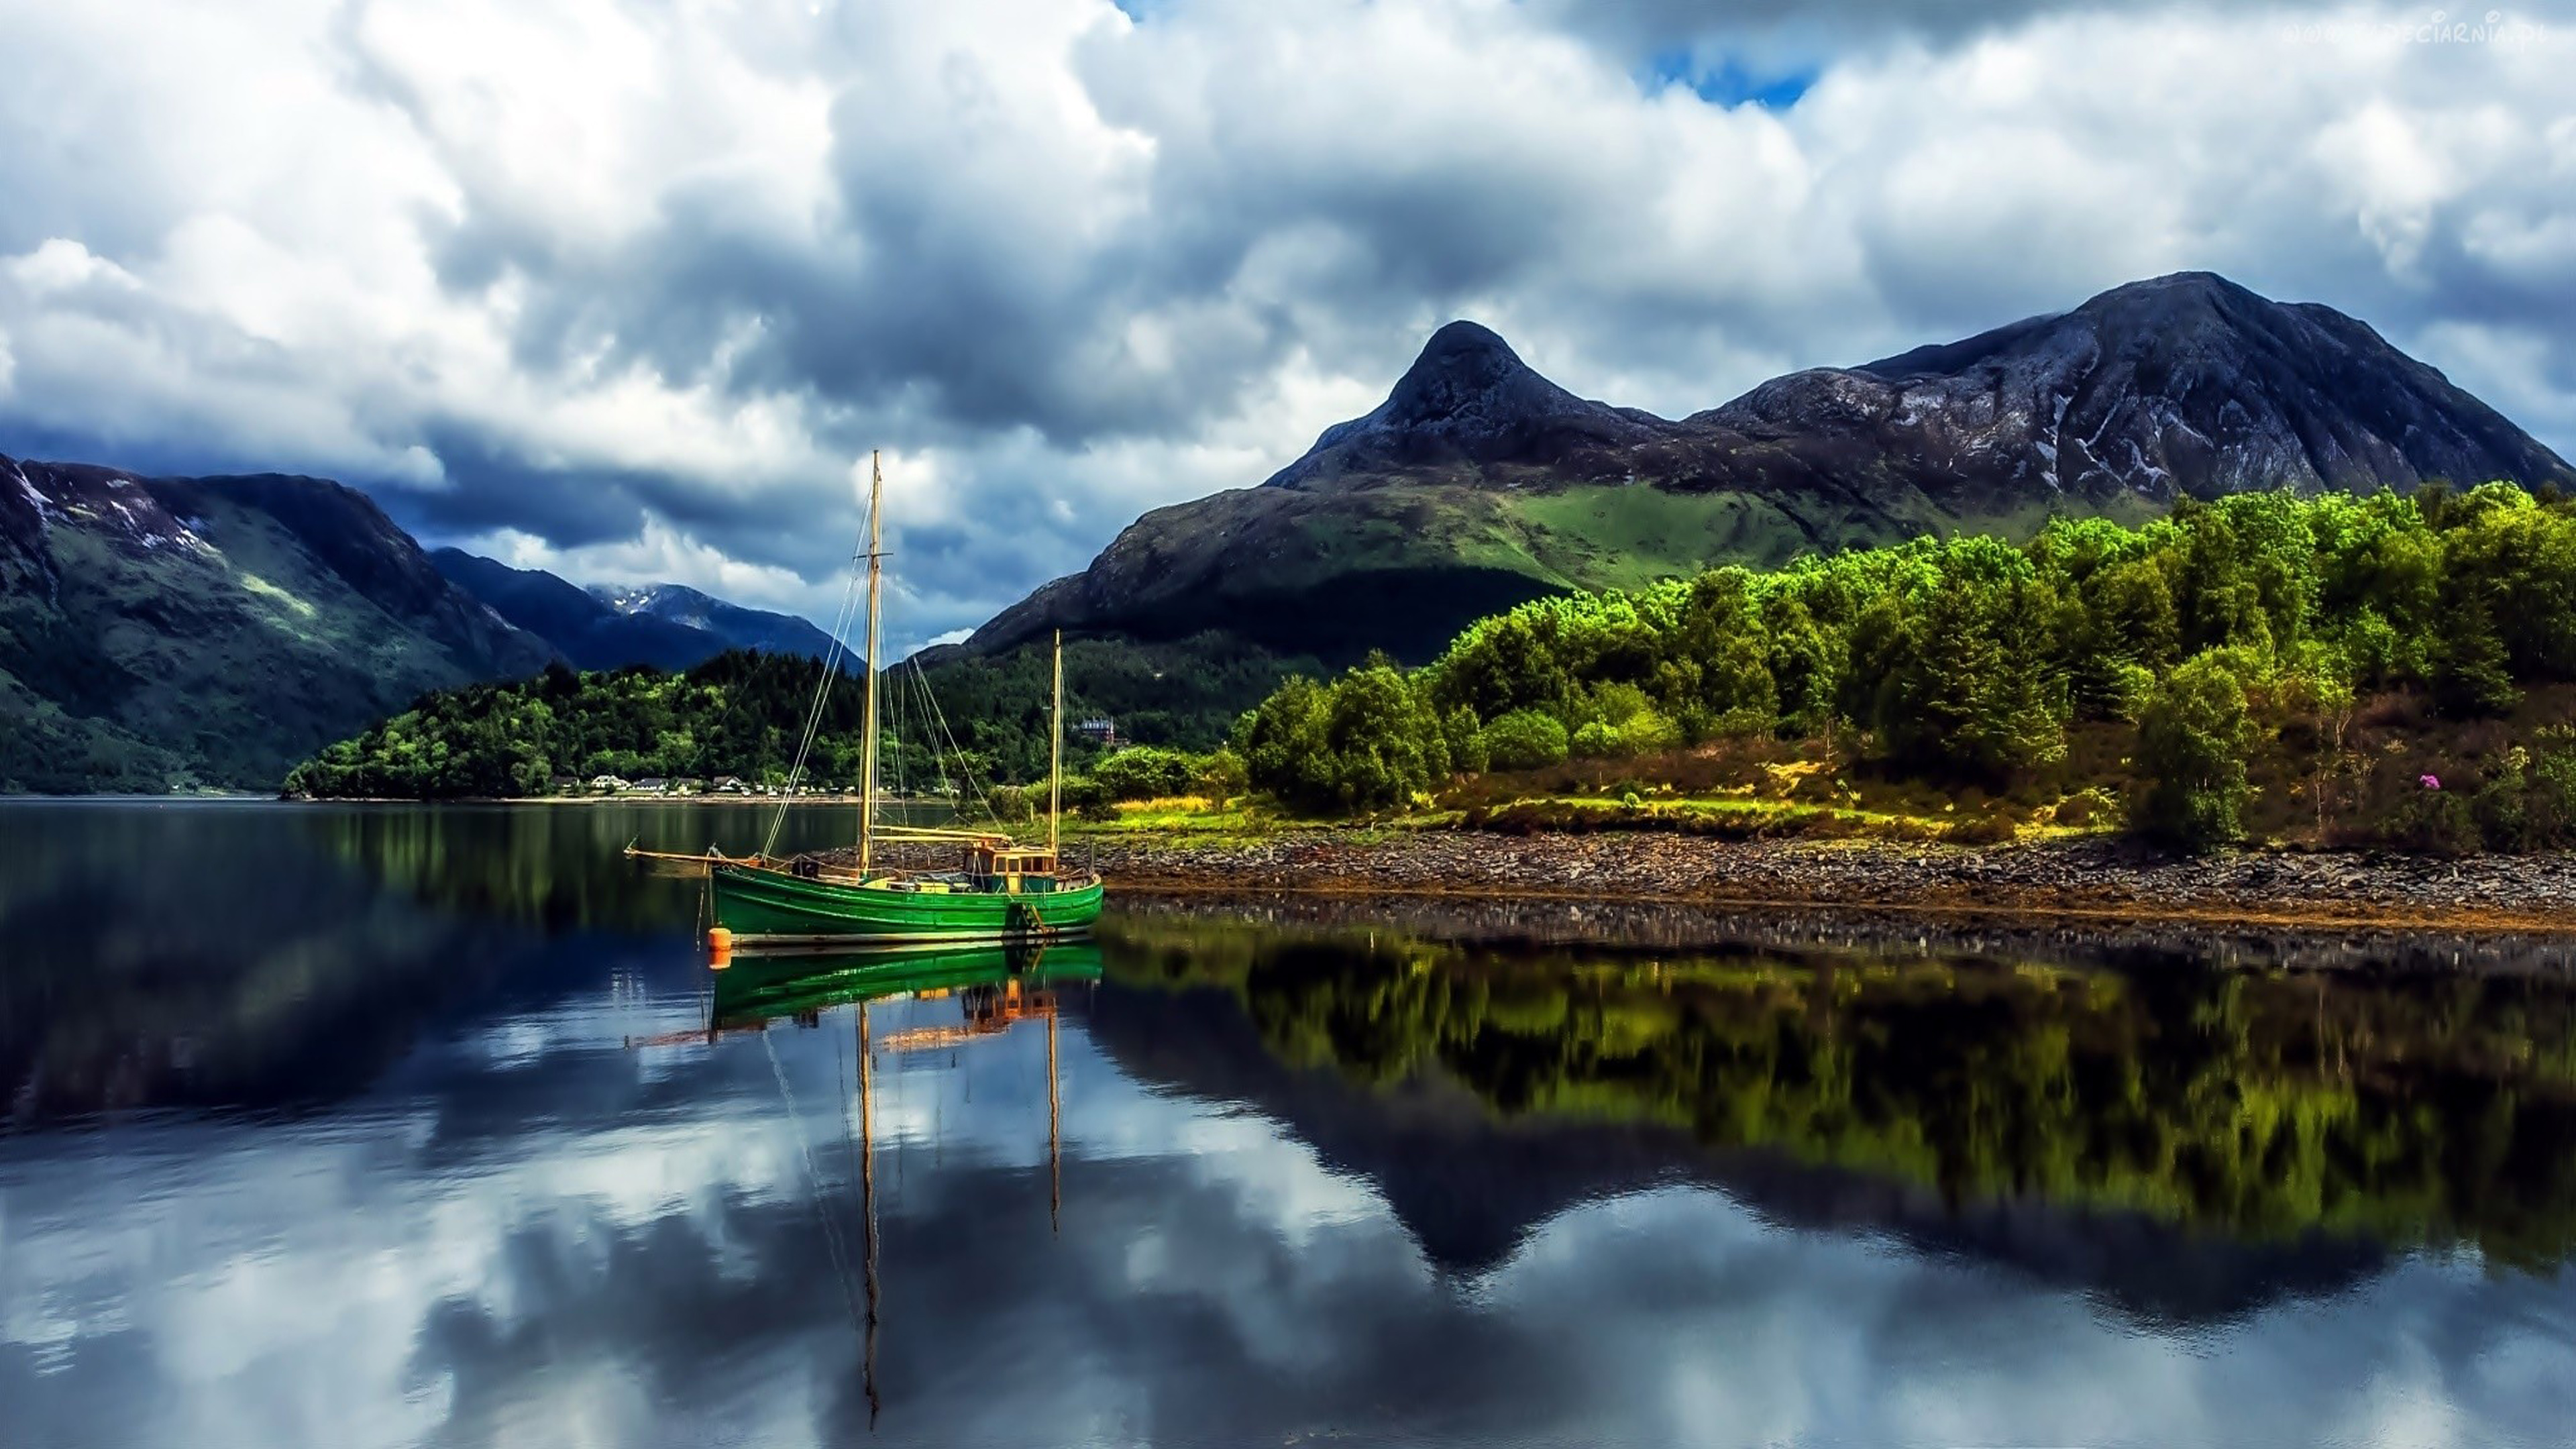 Fall River Wallpaper Nature Landscape Mountains Lake Green Boat With Sails